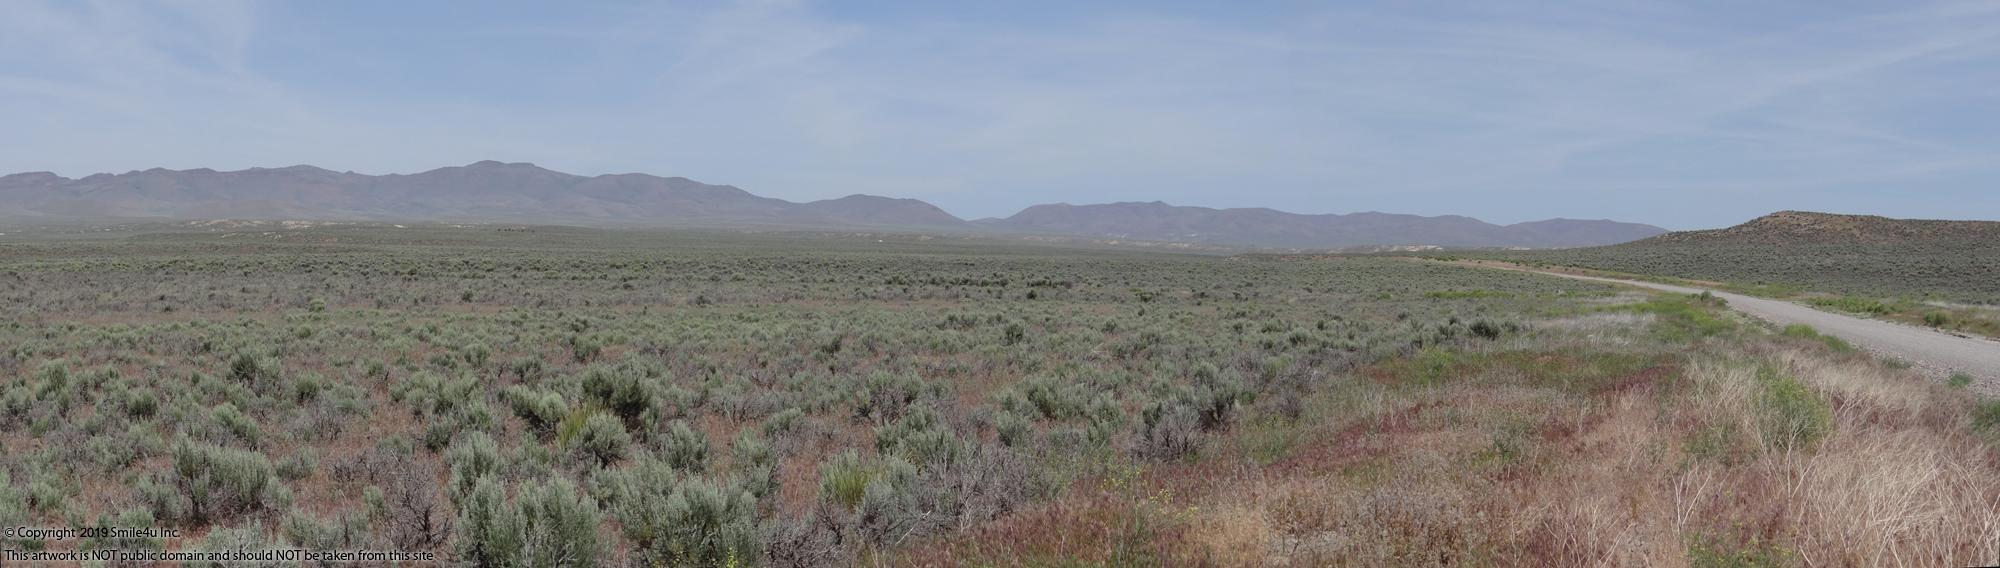 Looking N across the lots with the Adobe Mountains surrounding the valley.